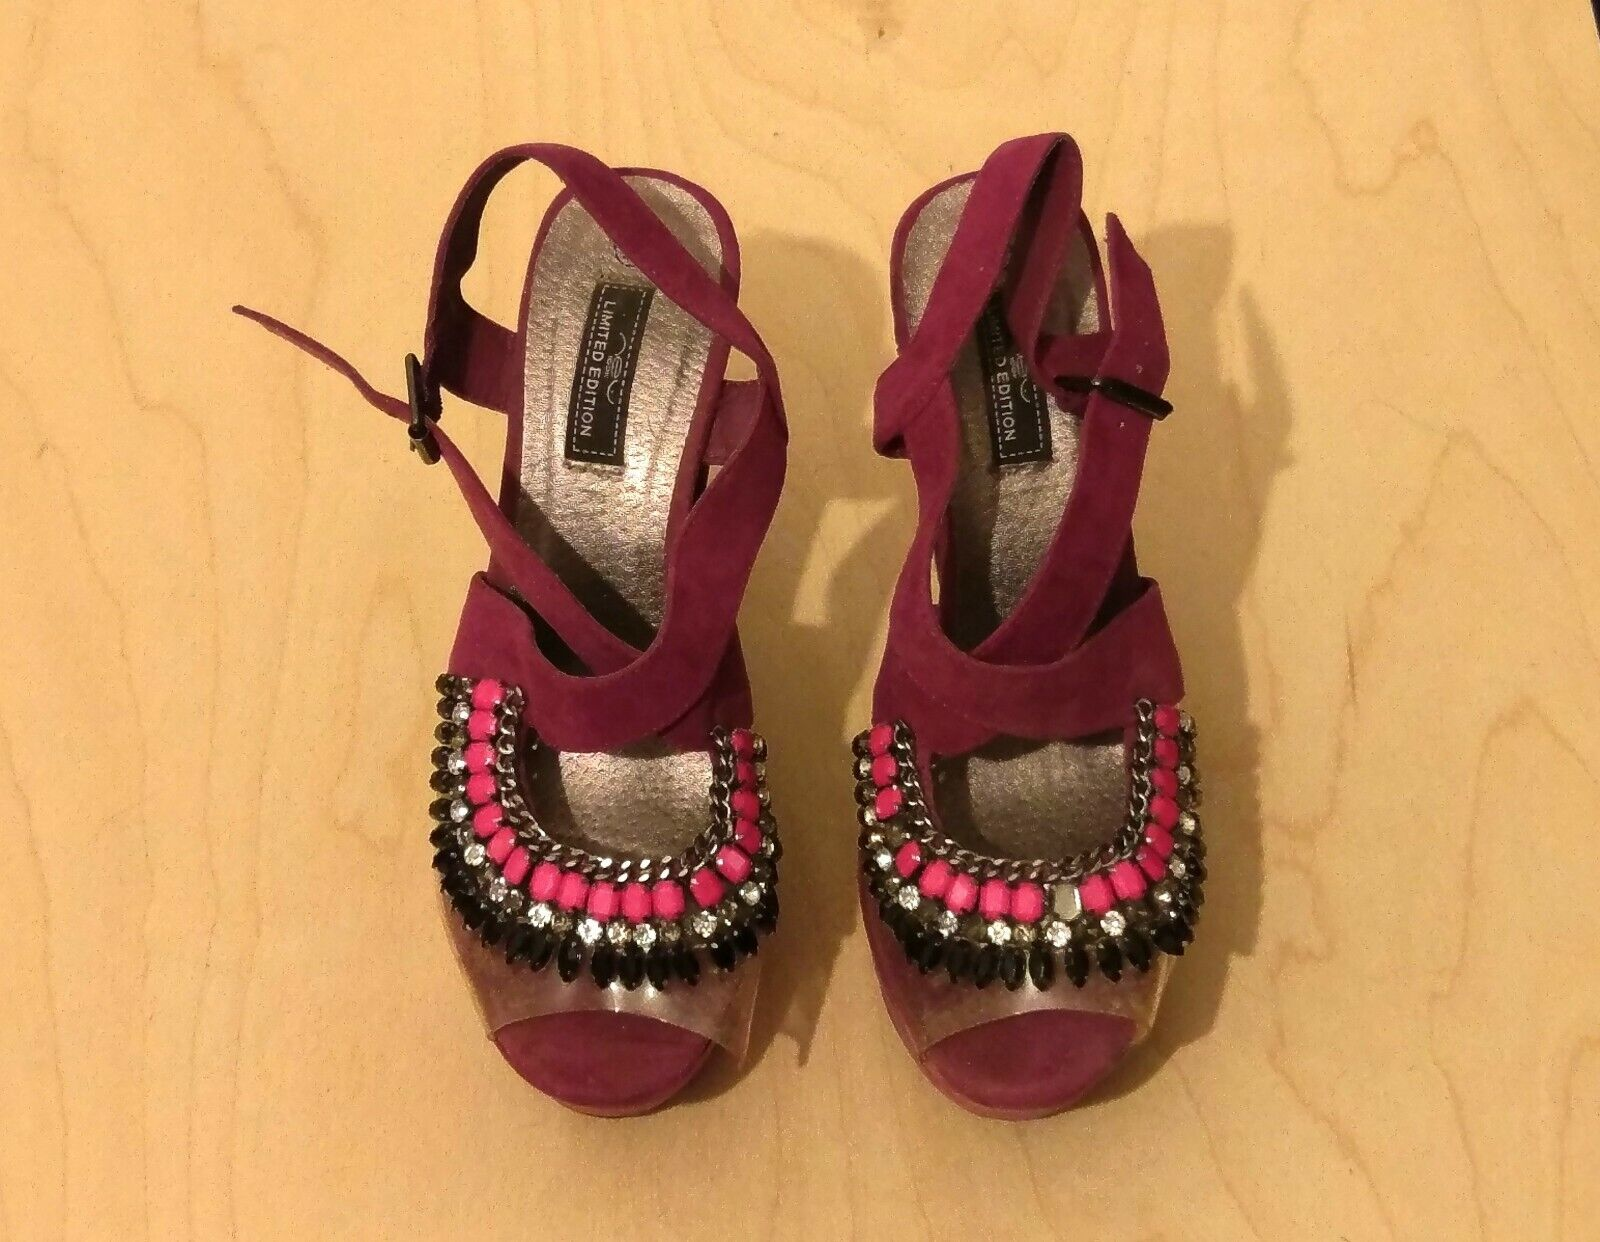 Purple Suede New Look Limited Edition Pink Jewel Platform Block Sandals Size 7